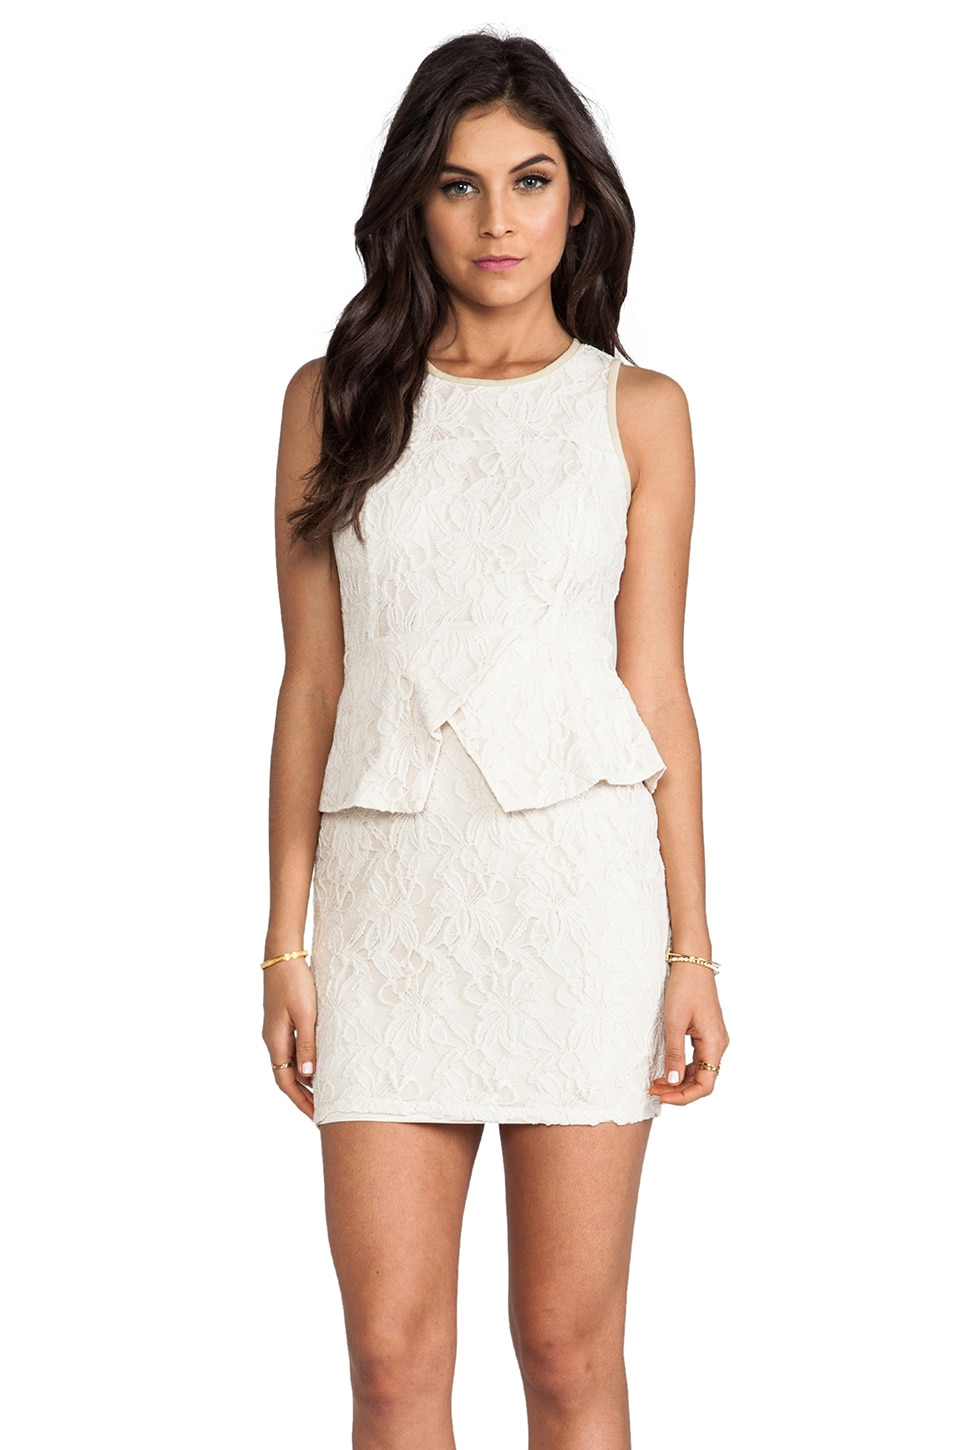 MM Couture by Miss Me Lace Peplum Dress in Ivory